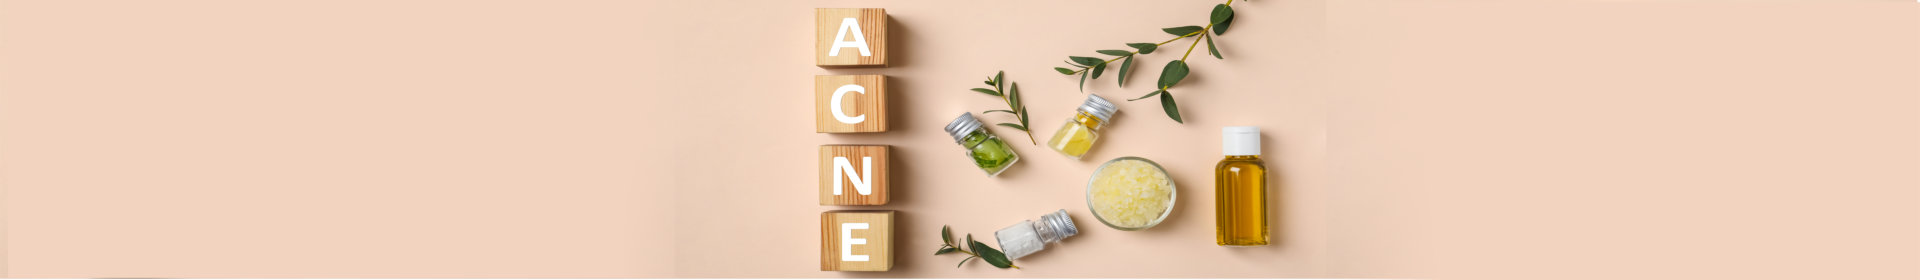 acne word and herbal medicine